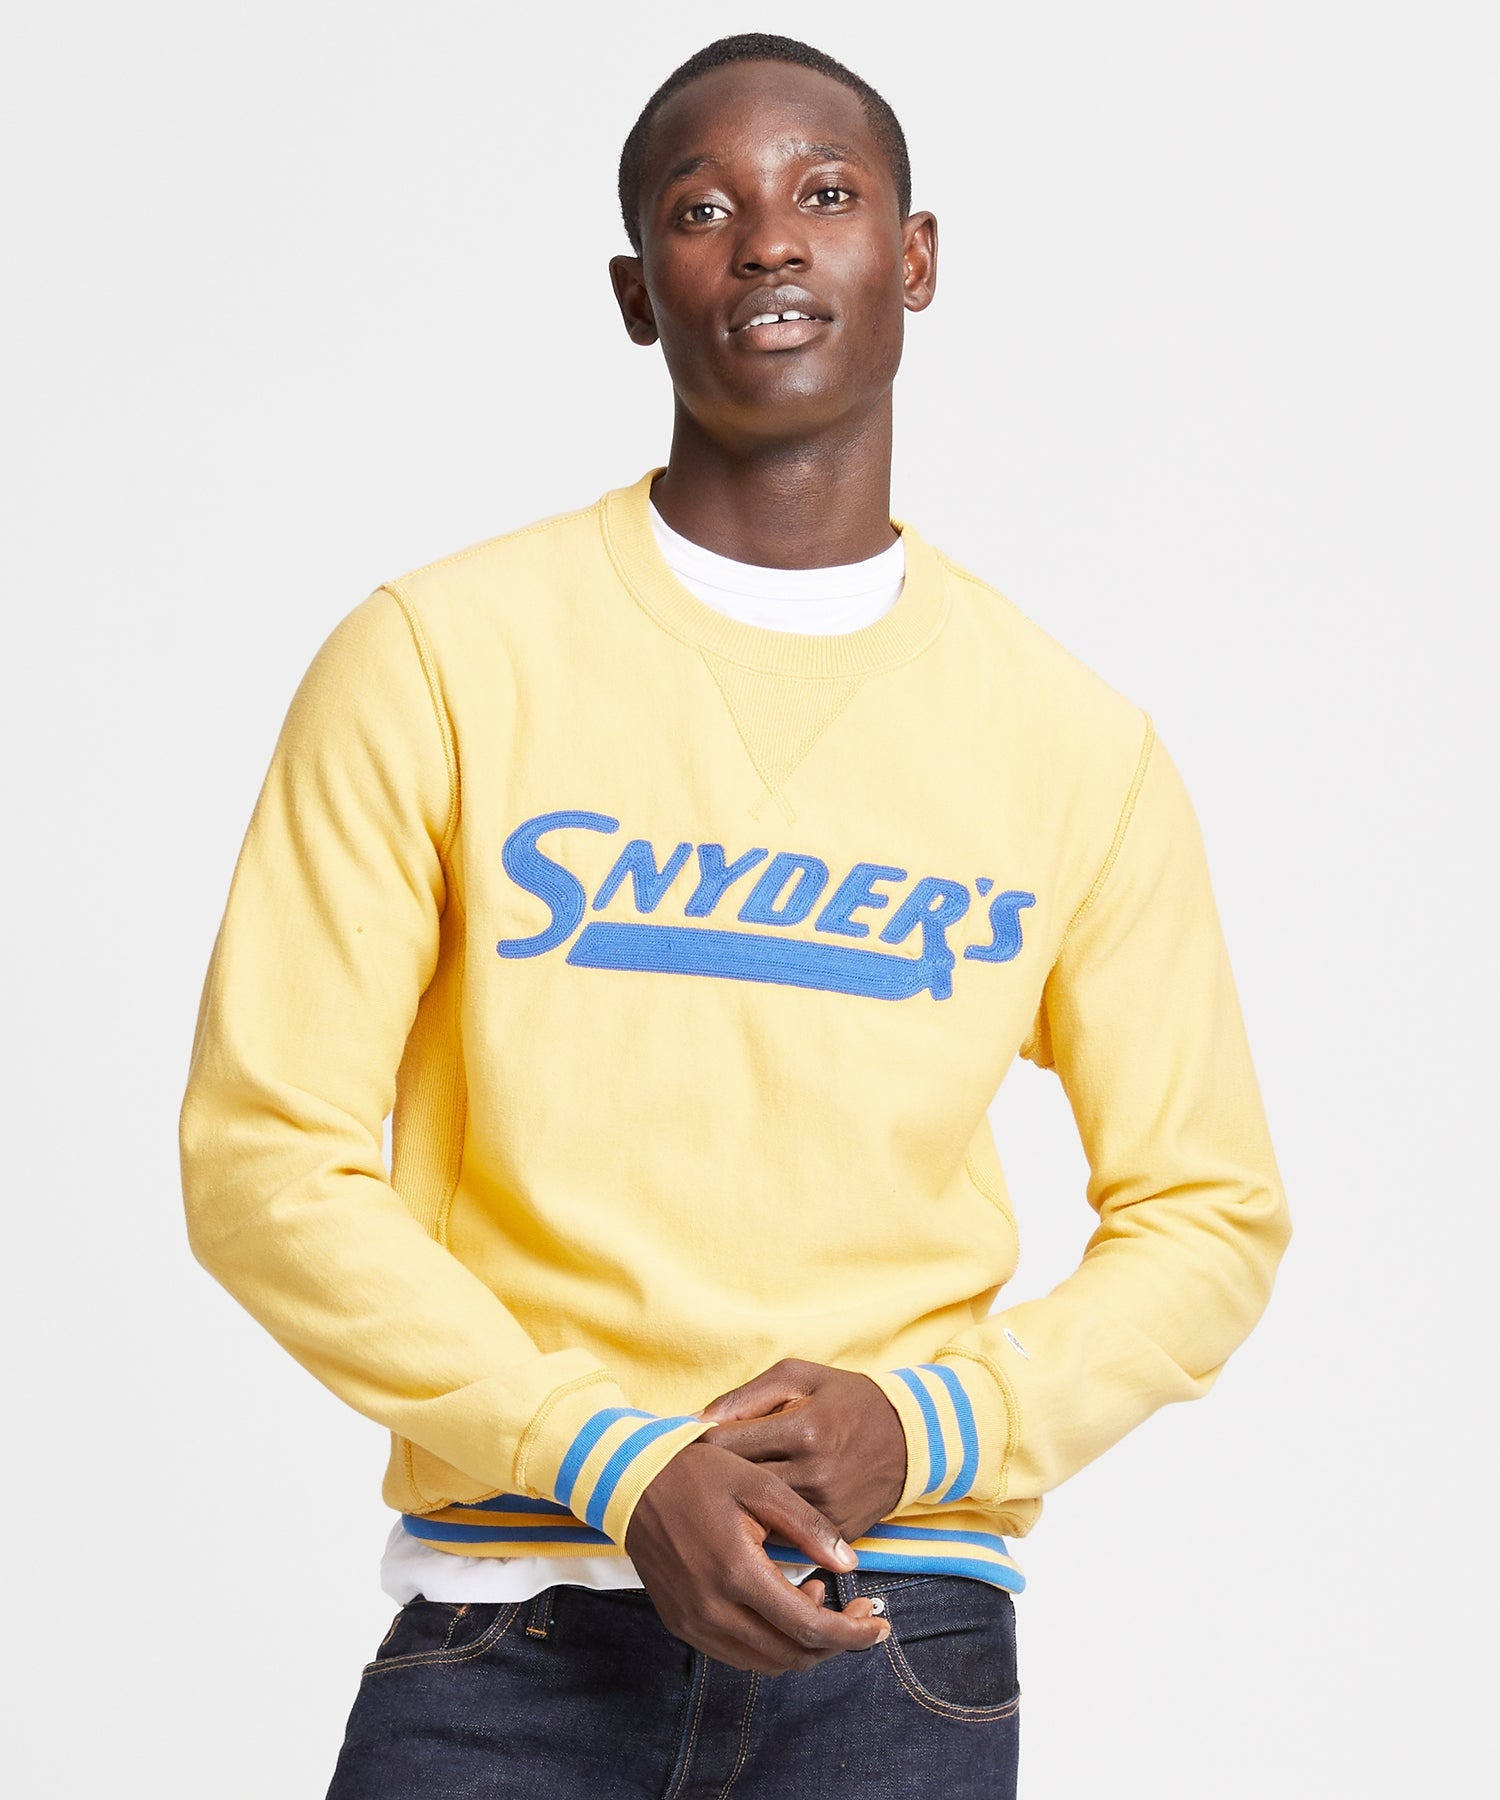 Snyder's Graphic Sweatshirt in Marigold